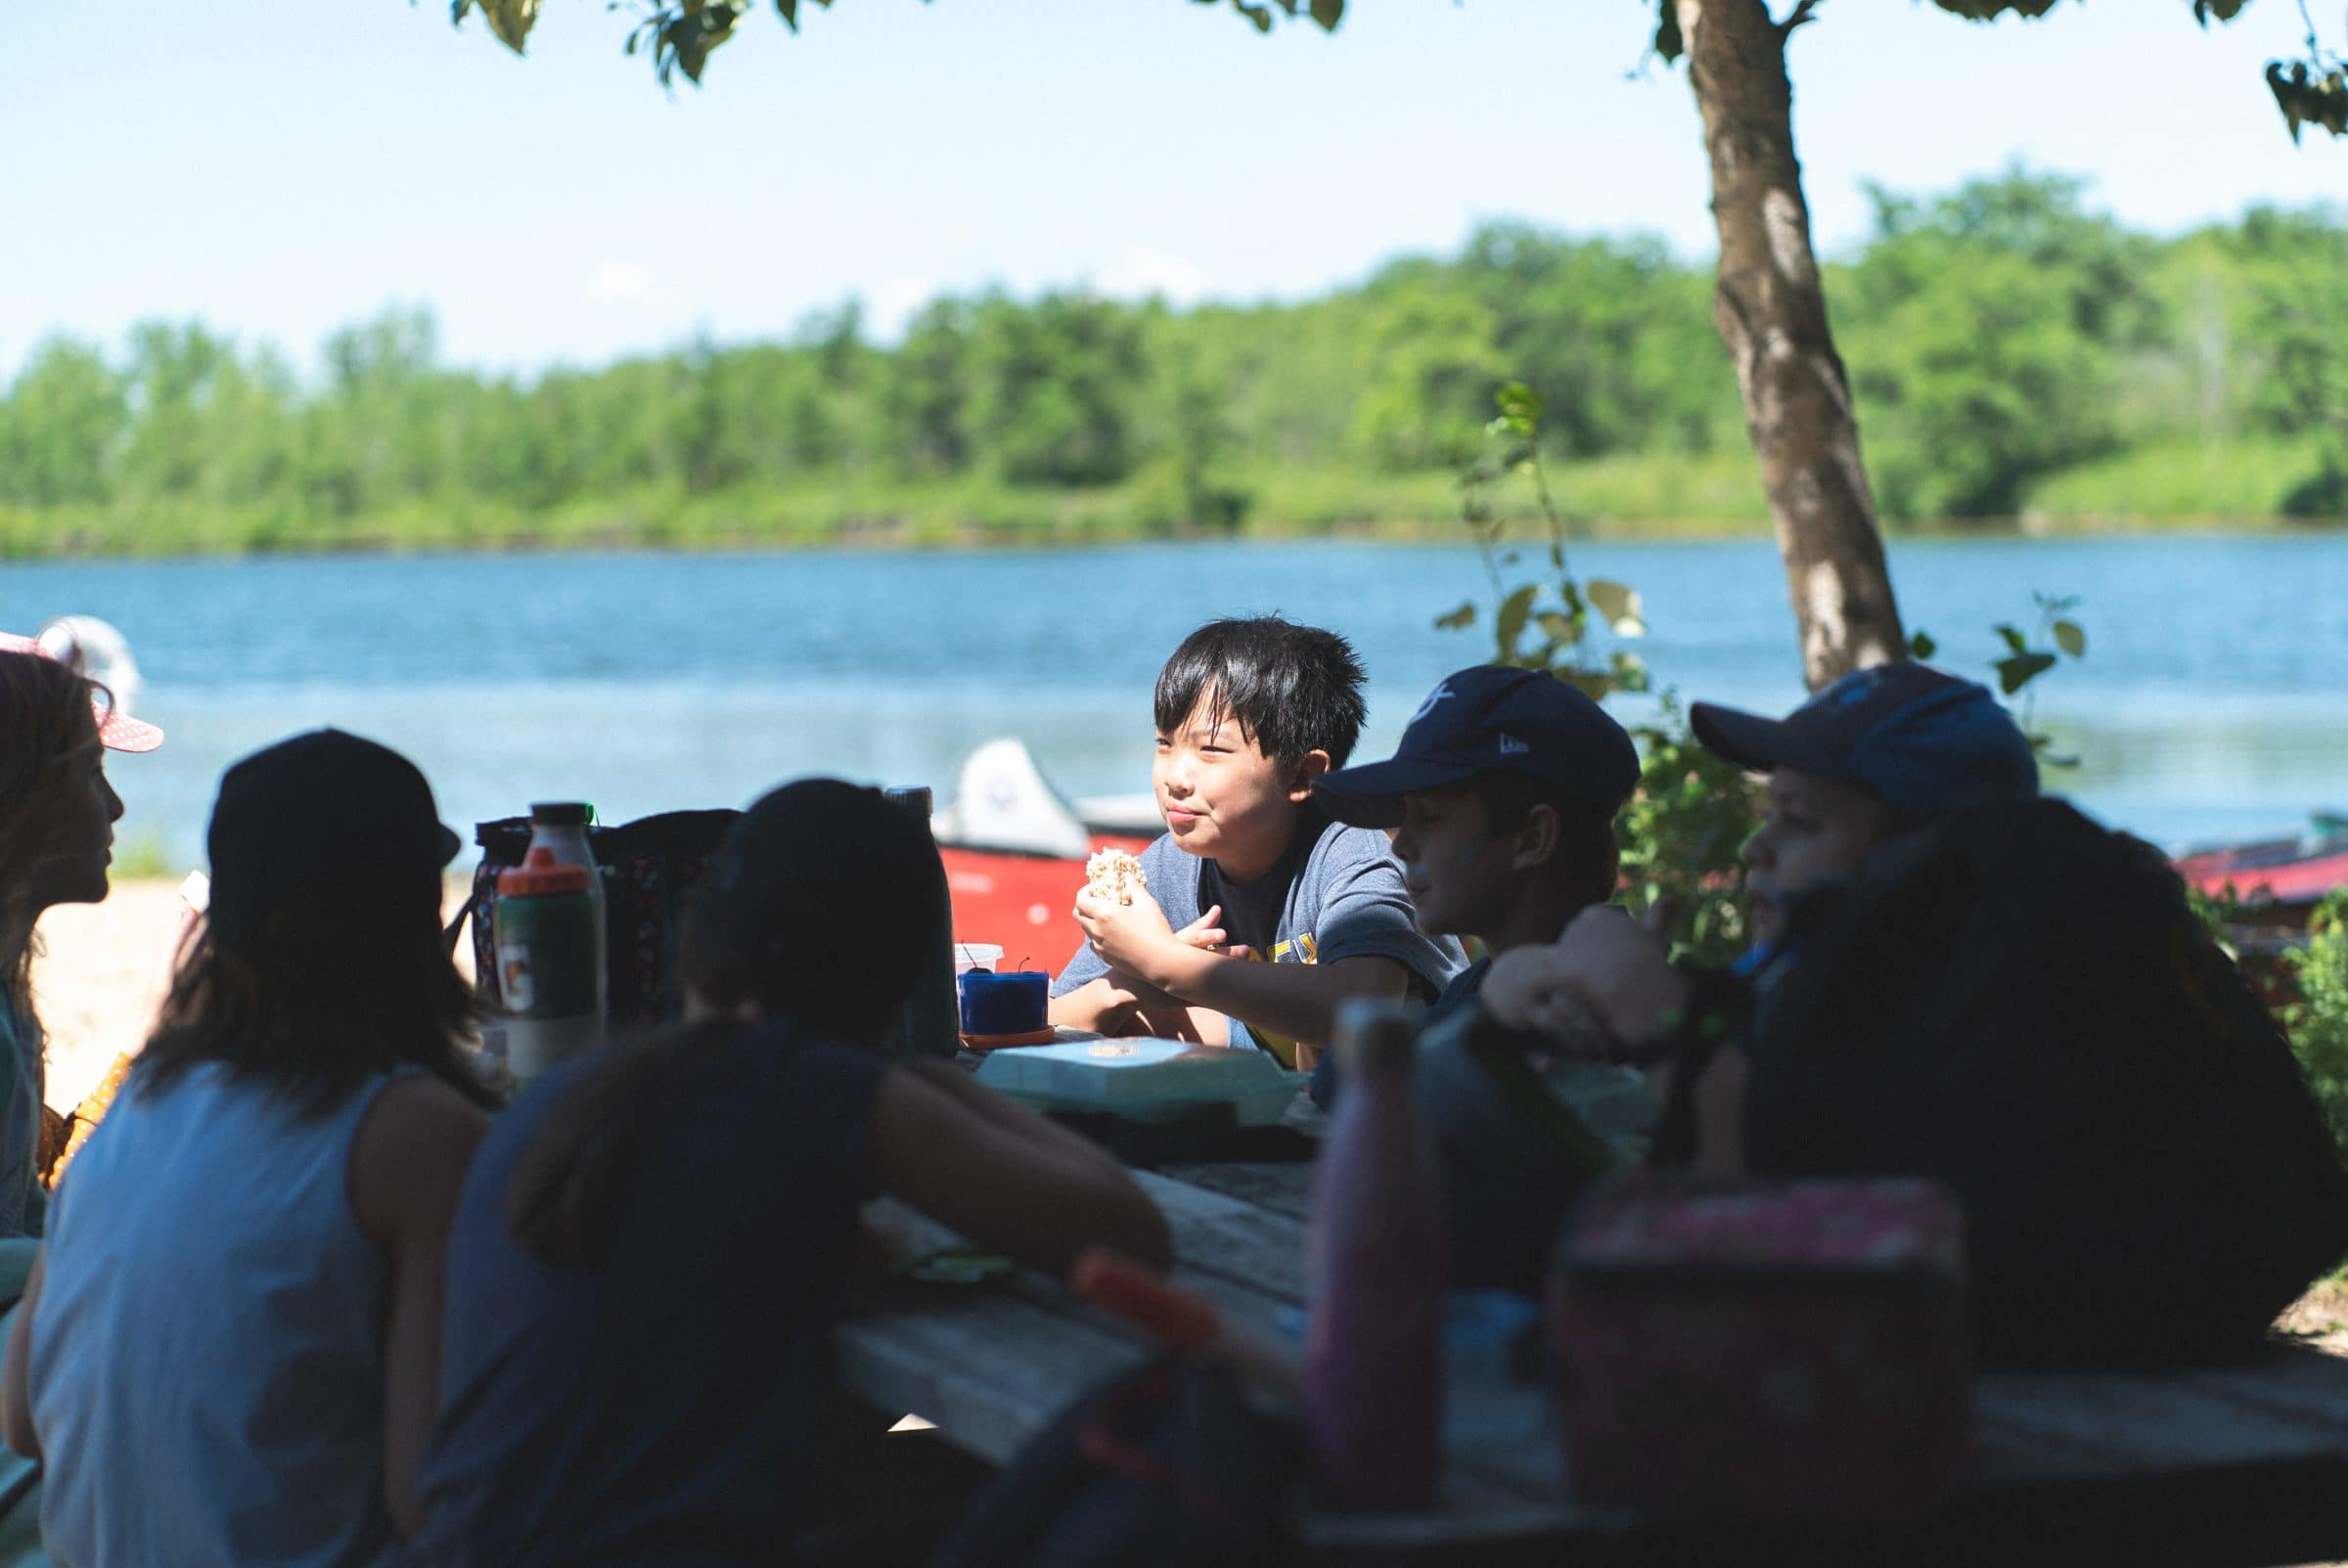 Children sitting around a picnic table eating lunch together at summer camp.